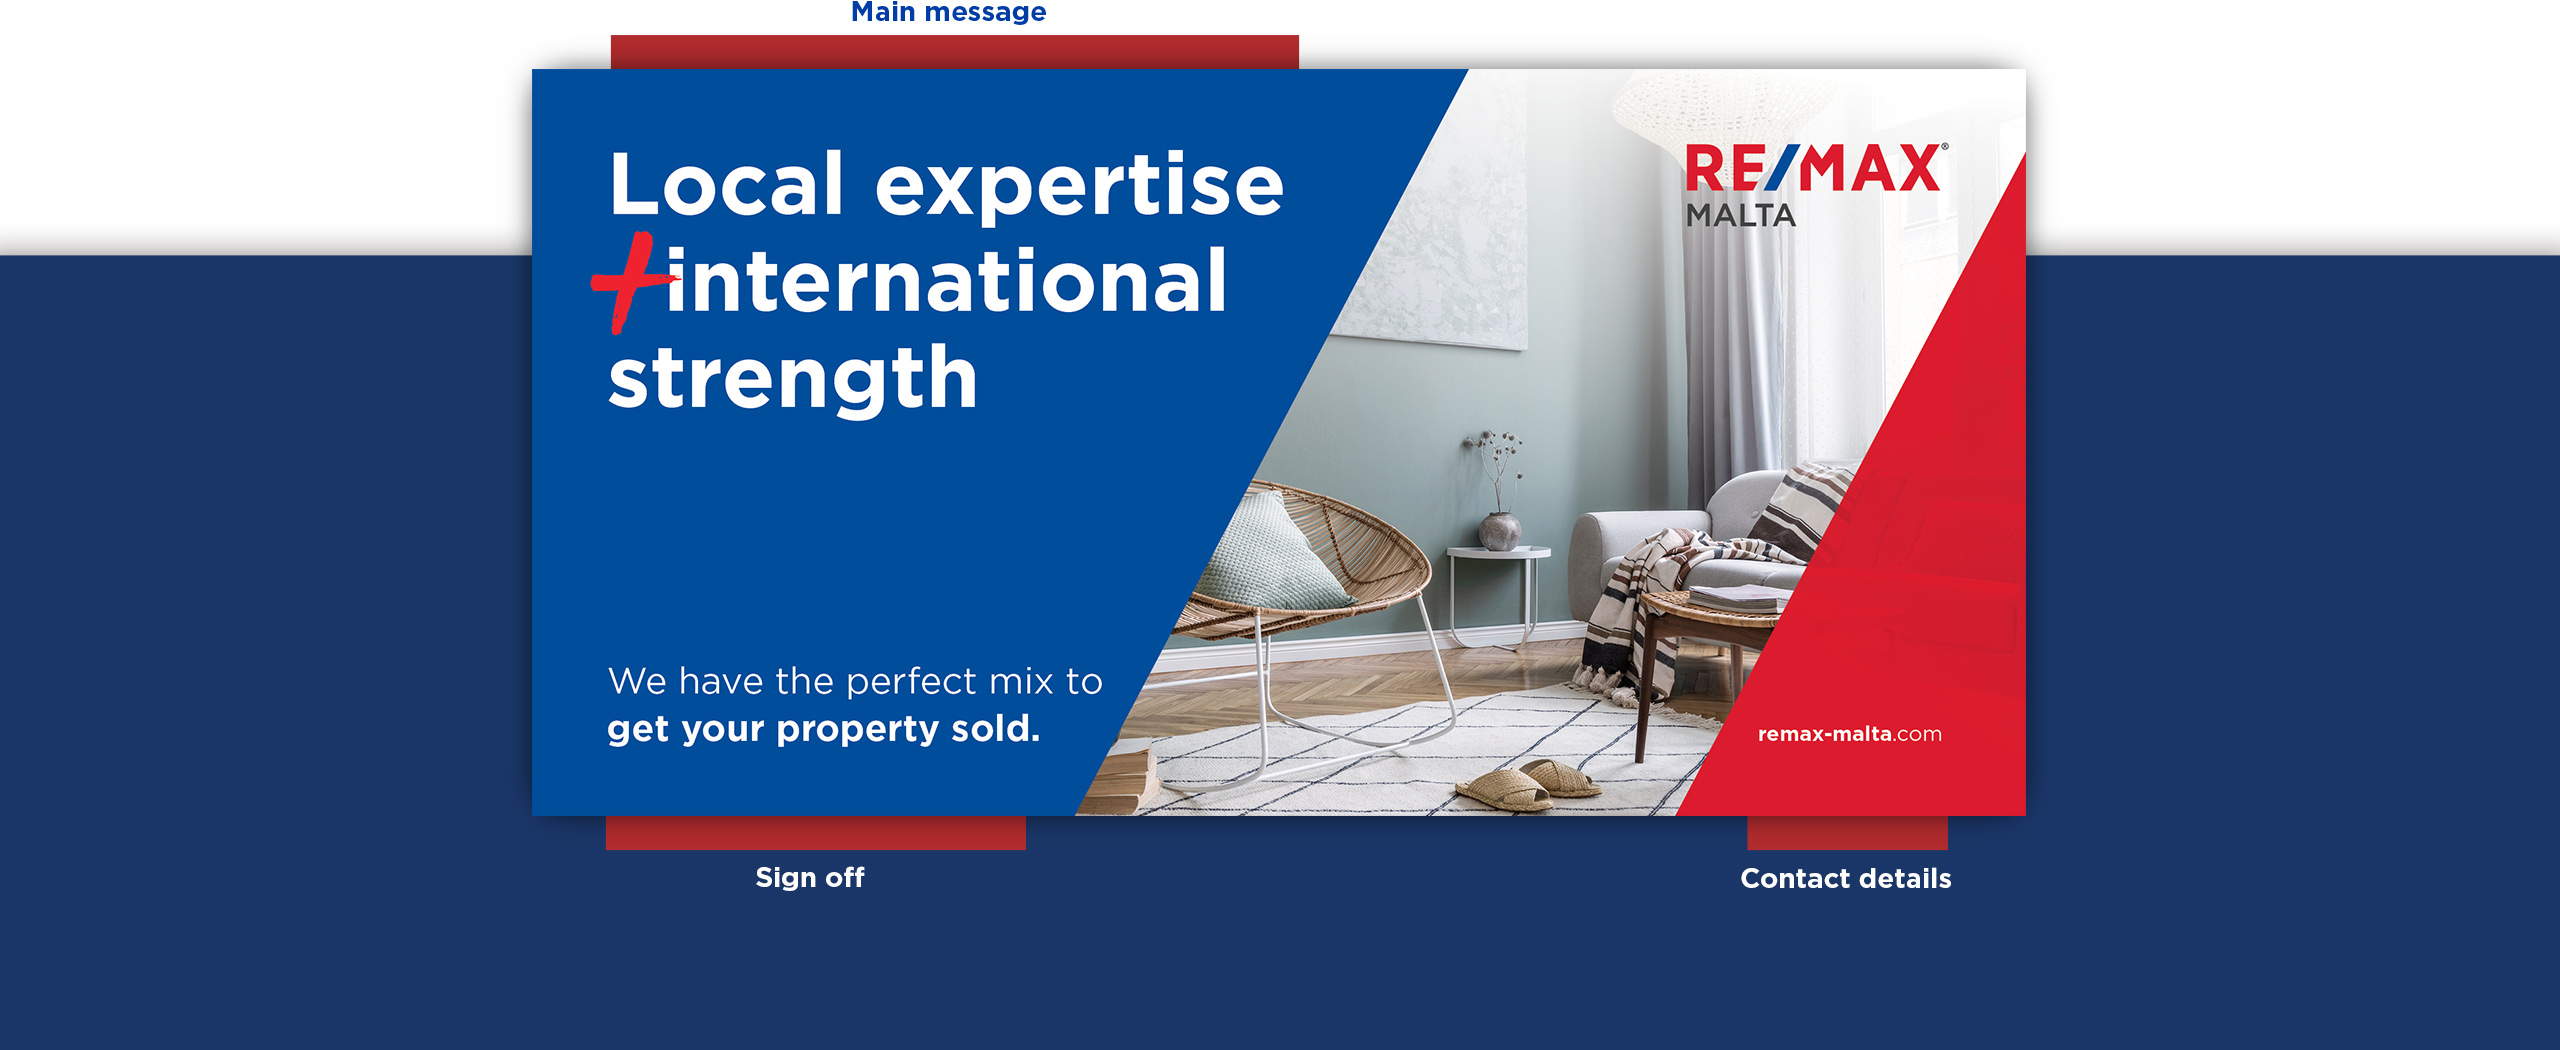 REMAX Local Expertise Billboard